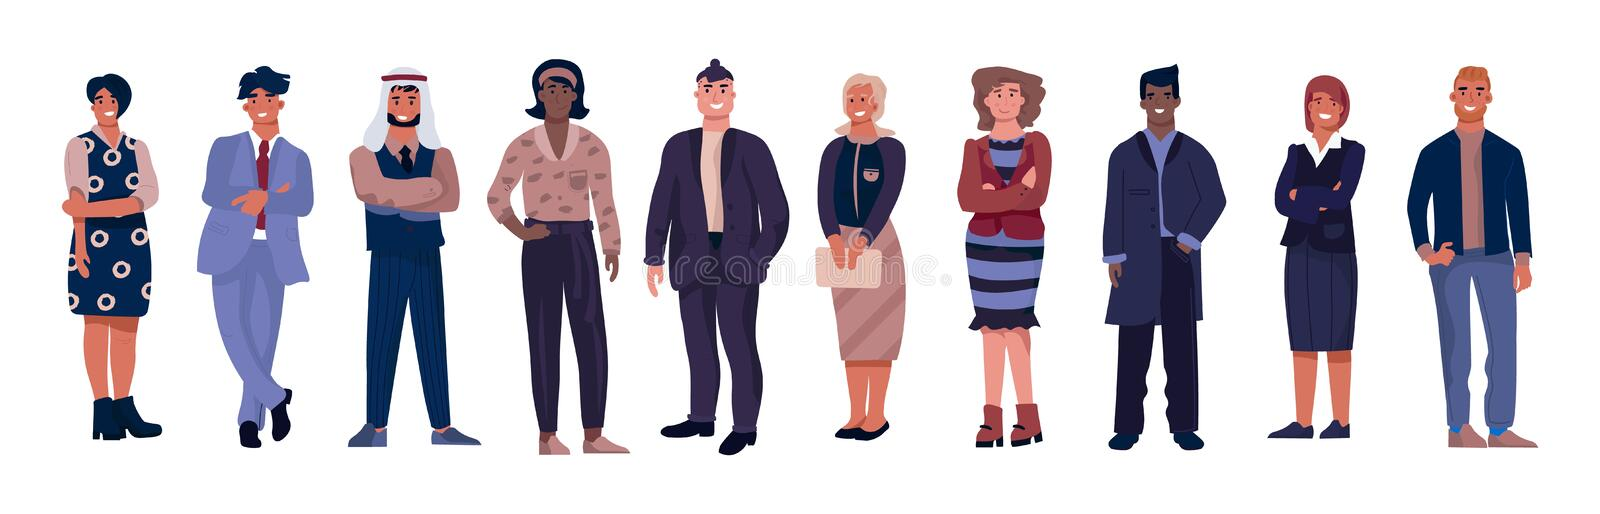 Diverse business characters. Office workers with equal opportunities, multicultural professional team. Vector corporate royalty free illustration